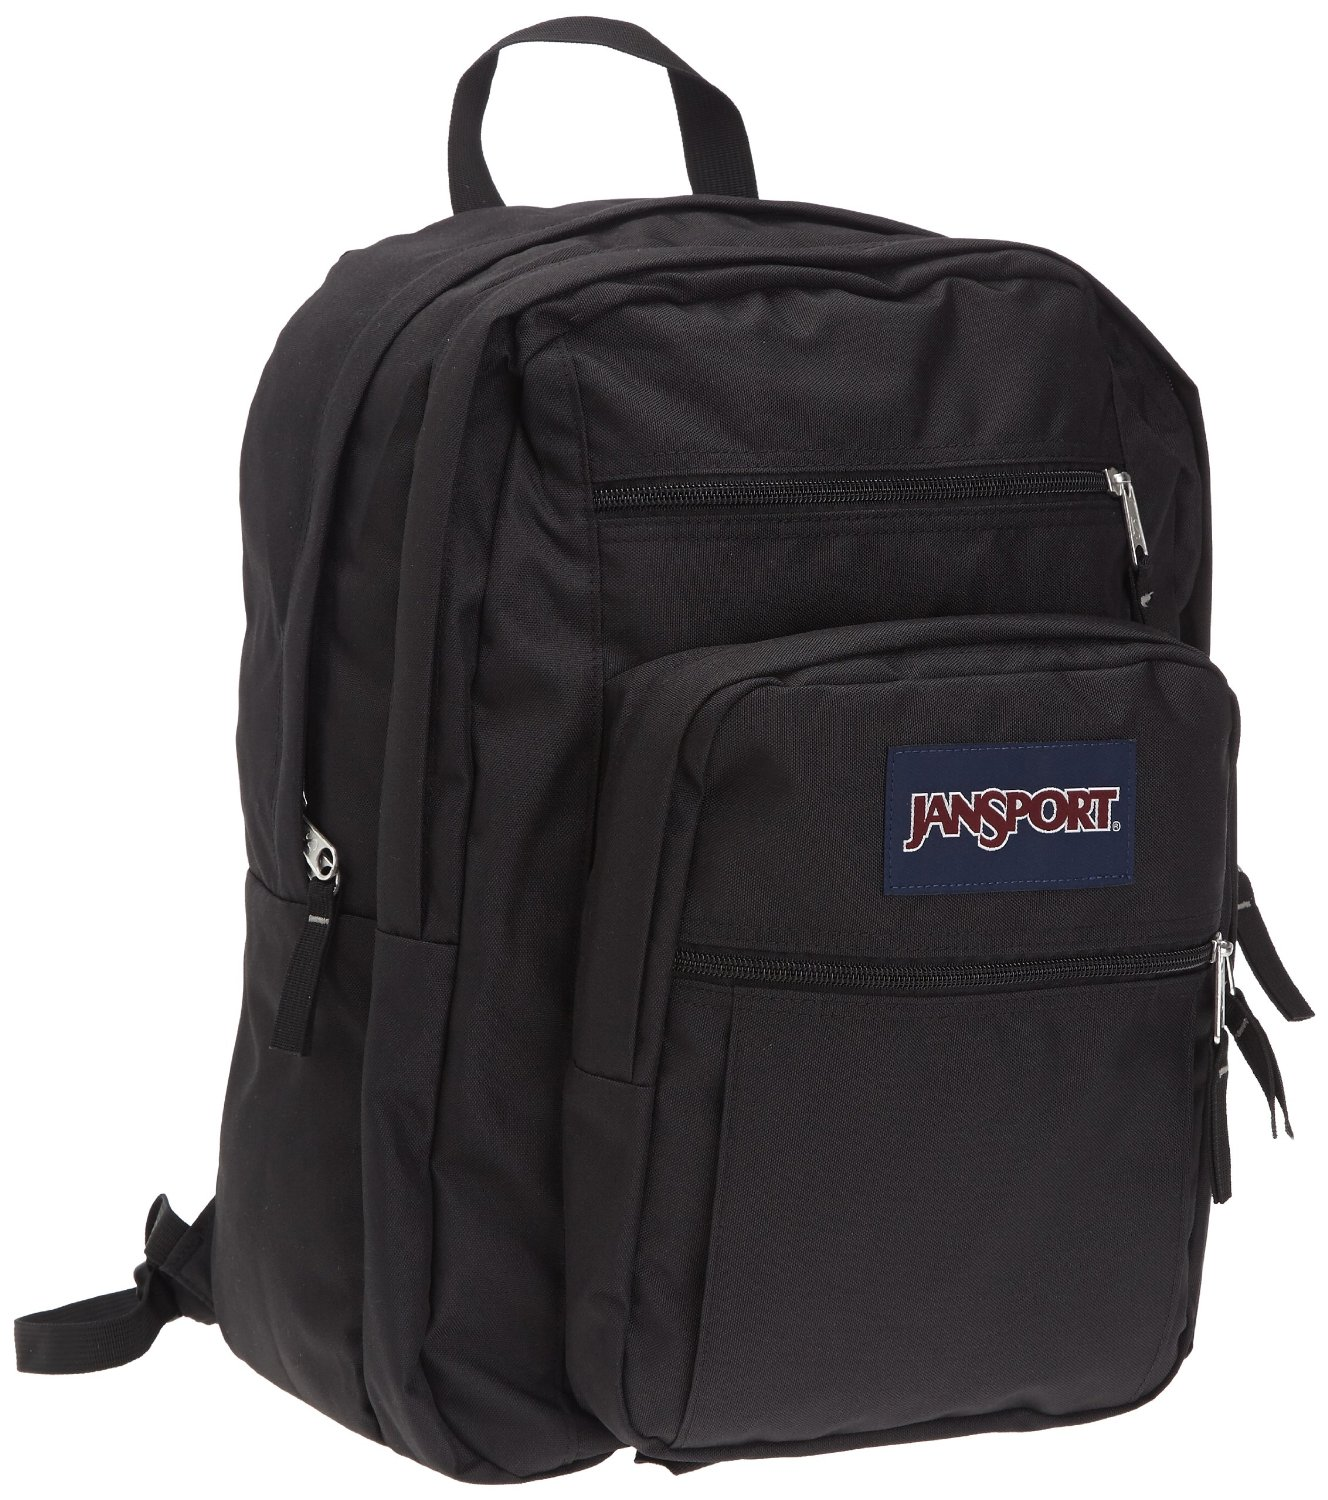 Huge Jansport Backpack LV0KceGO